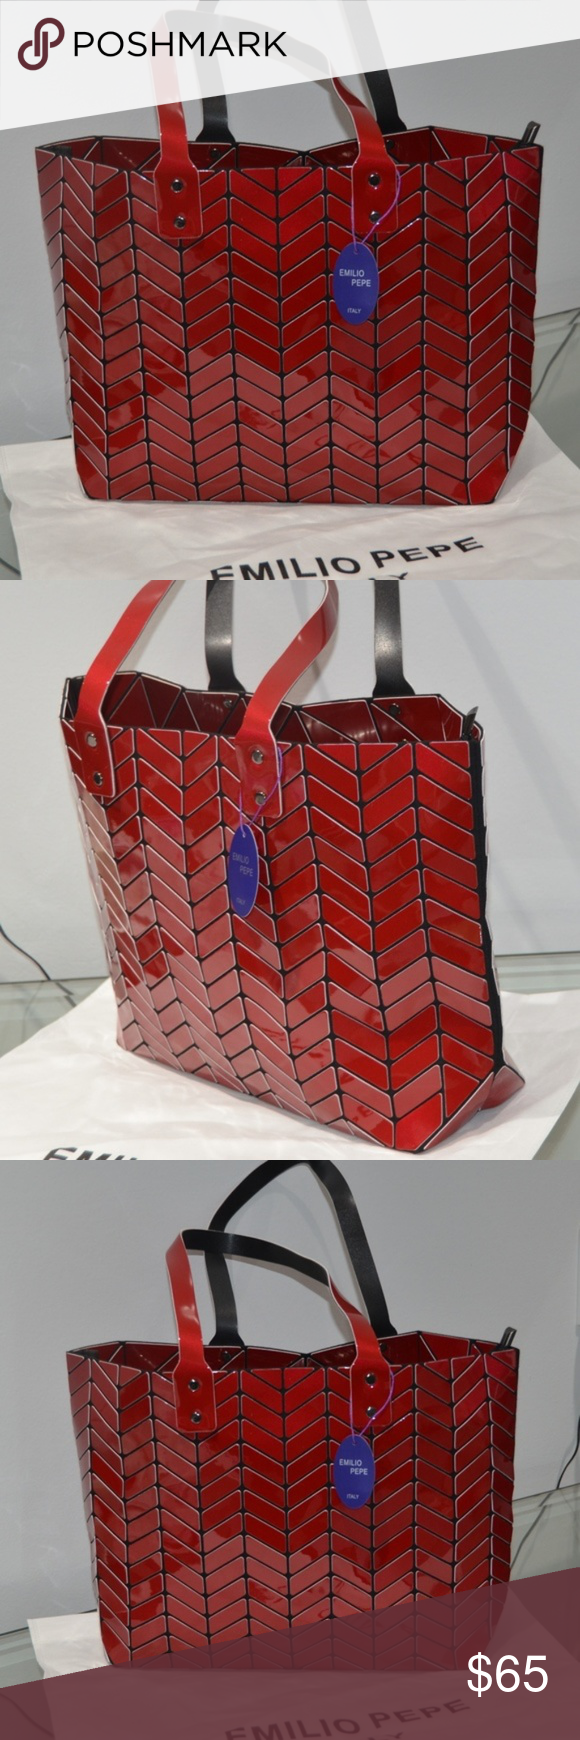 af83ee1e792 Carry Bag · Emilio Pepe Italy SHINY RED Tote NEW WITH TAG Emilio Pepe Italy  SHINY RED TOTE NEW